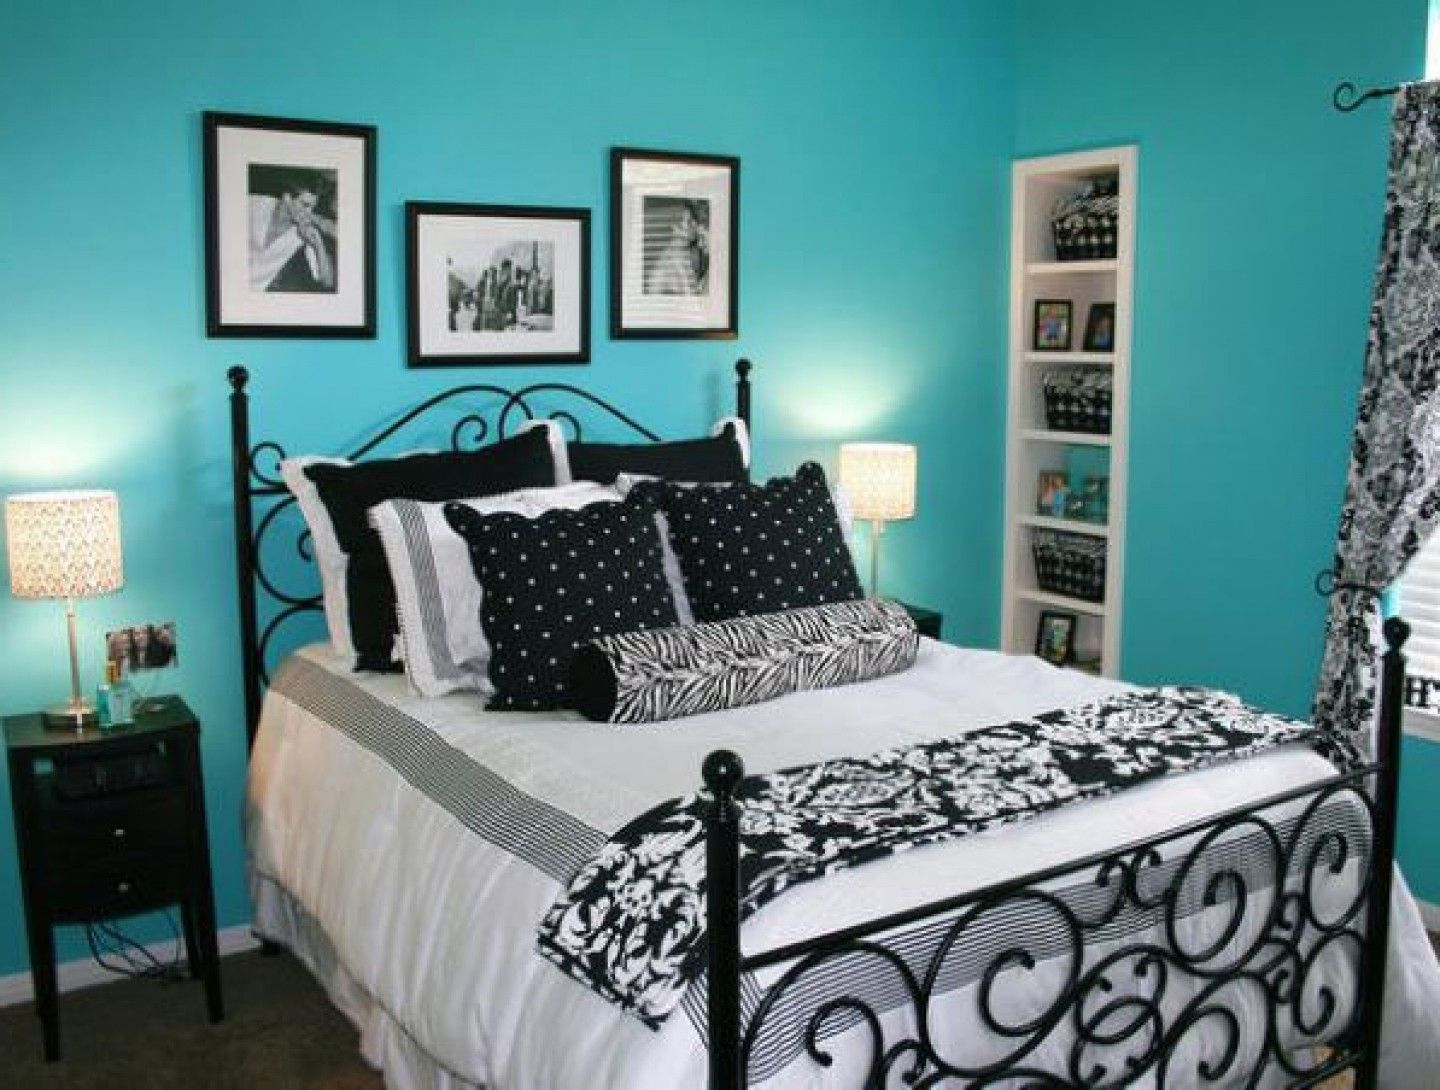 prodigious Teal Blue And Black Bedroom Part - 4: Bedroom Ideas With Black Furniture And Blue Walls | Home gallery